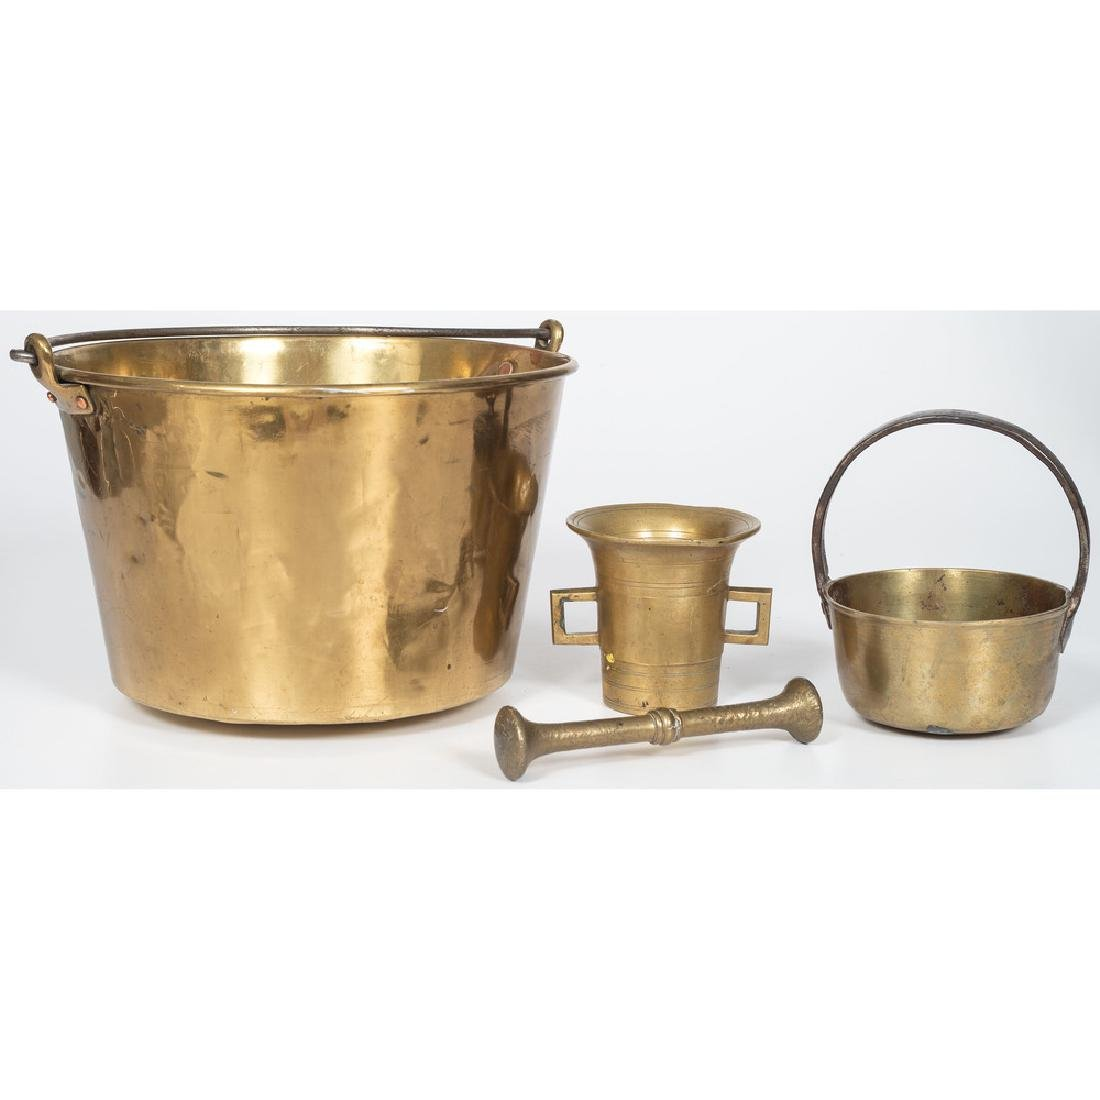 Brass Pail, Handled Pot, and Mortar and Pestle